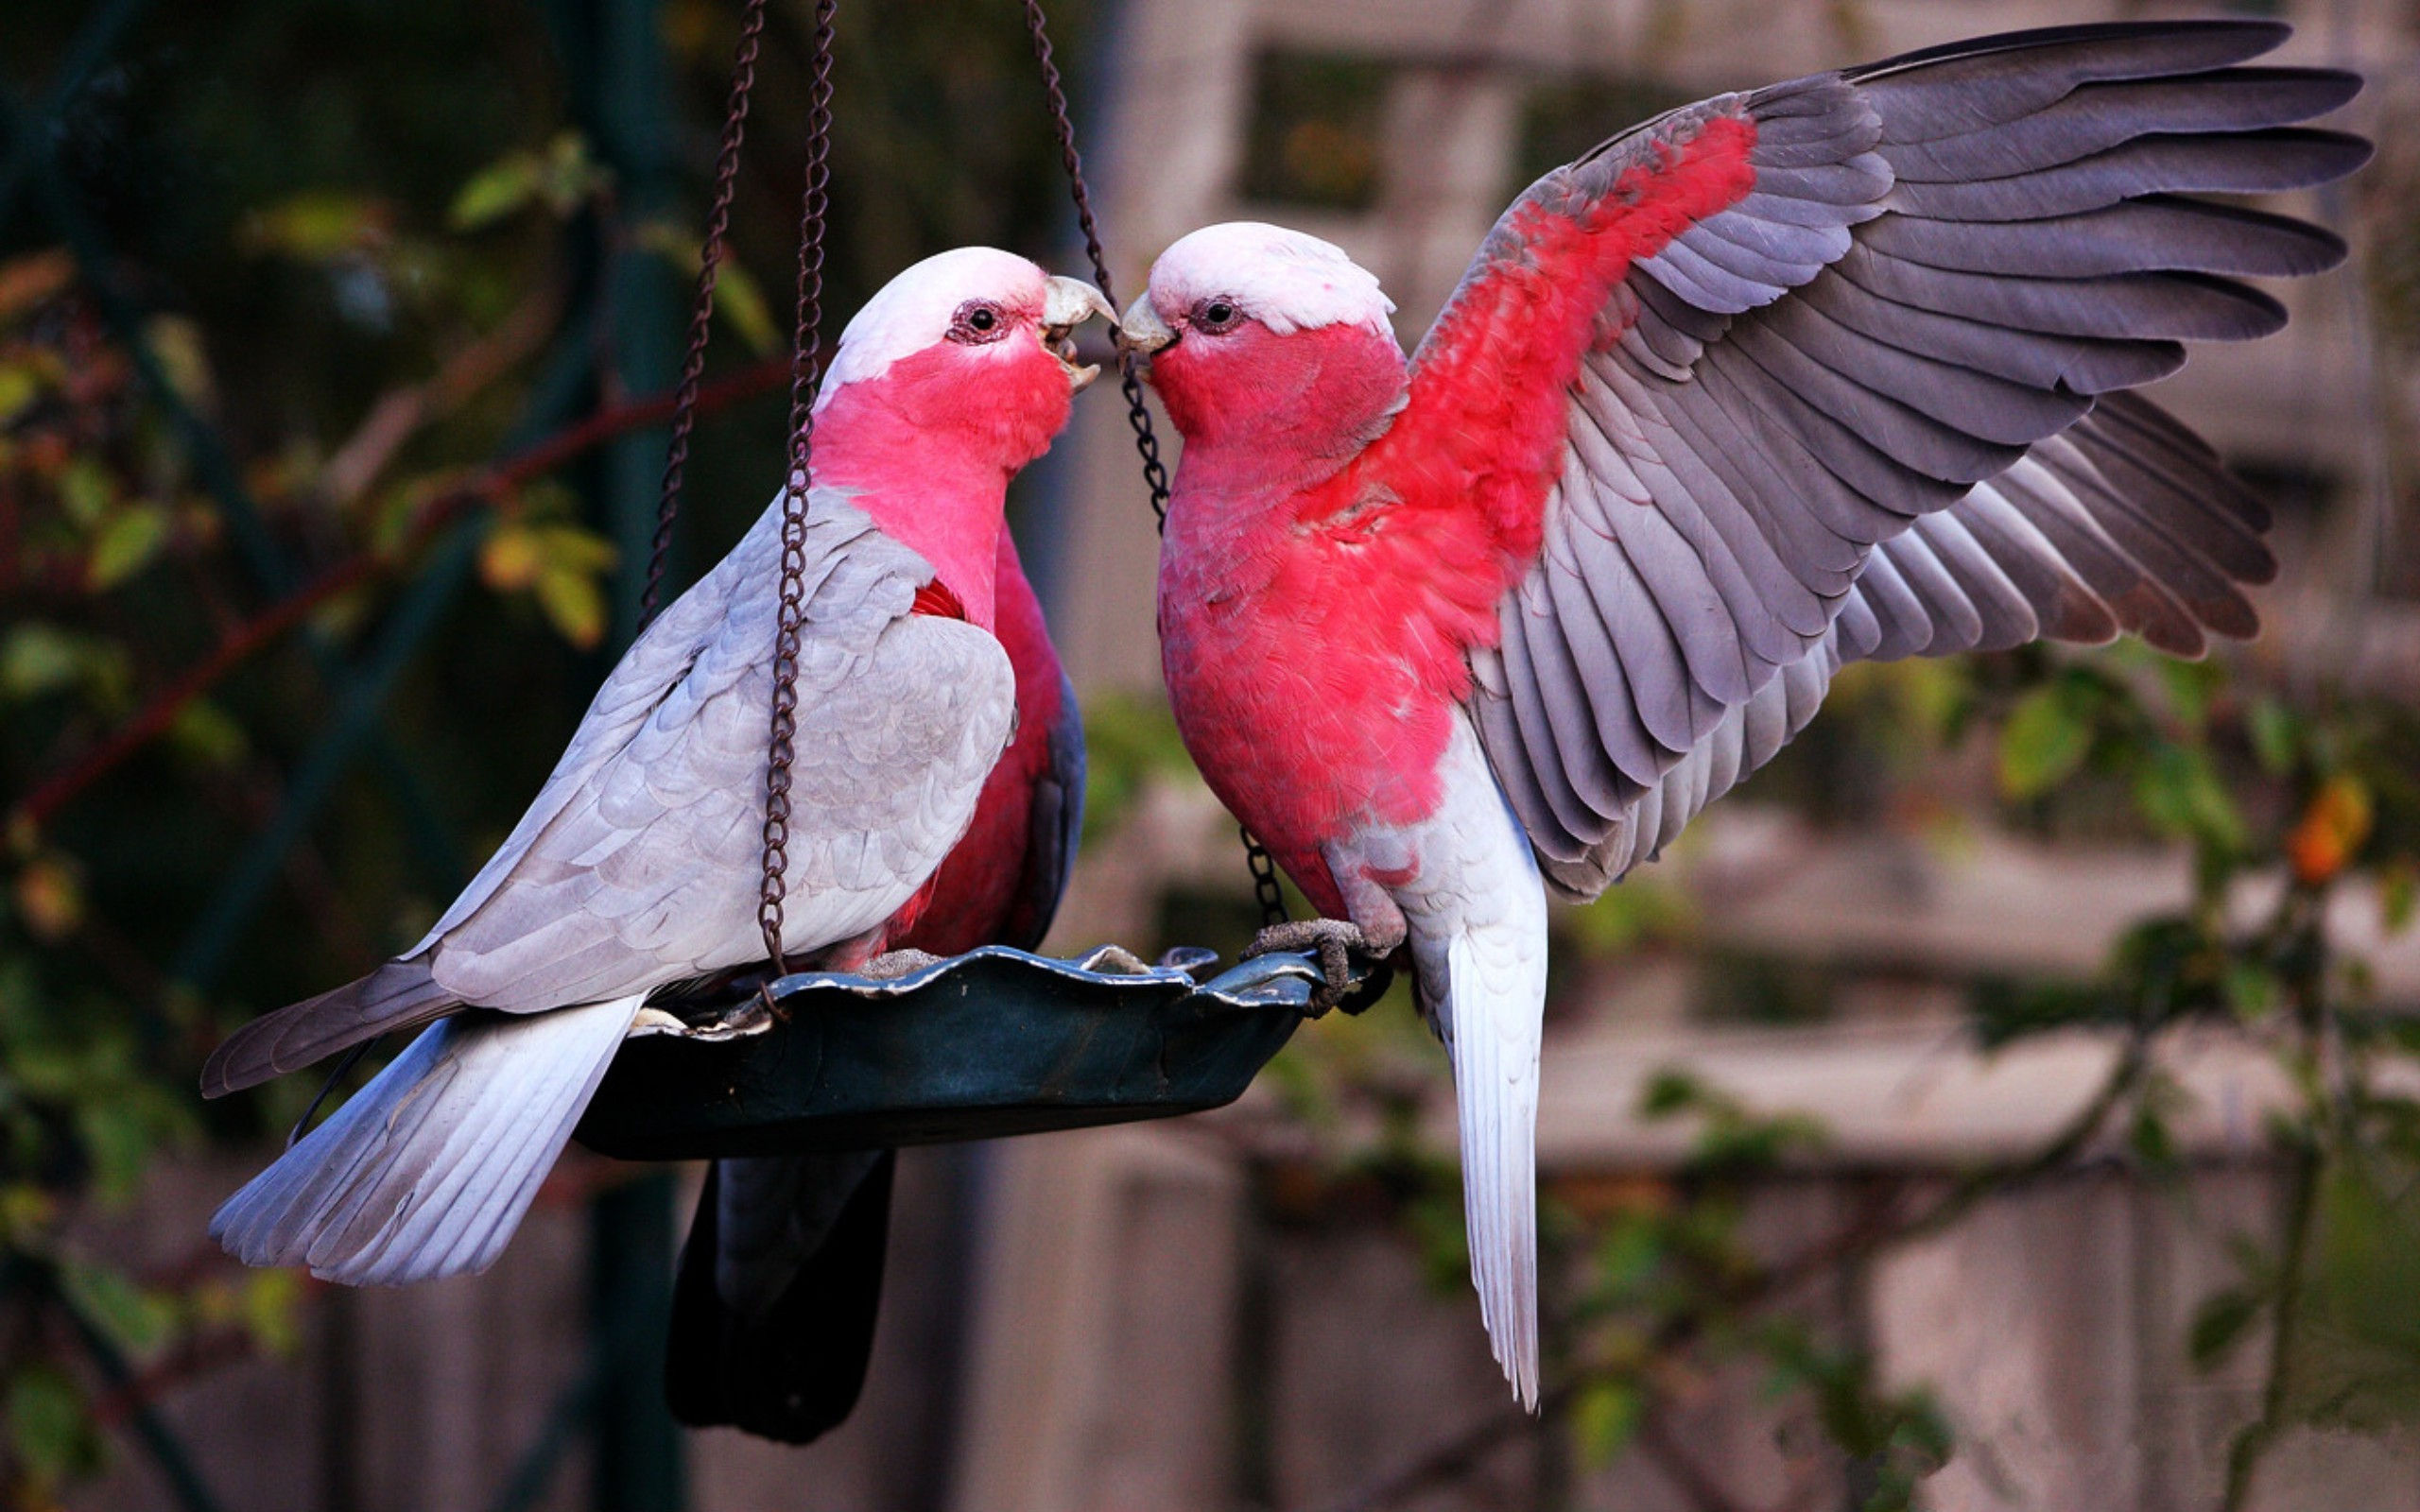 Cute Couple Phone Wallpaper Lovebird Wallpaper 183 ①